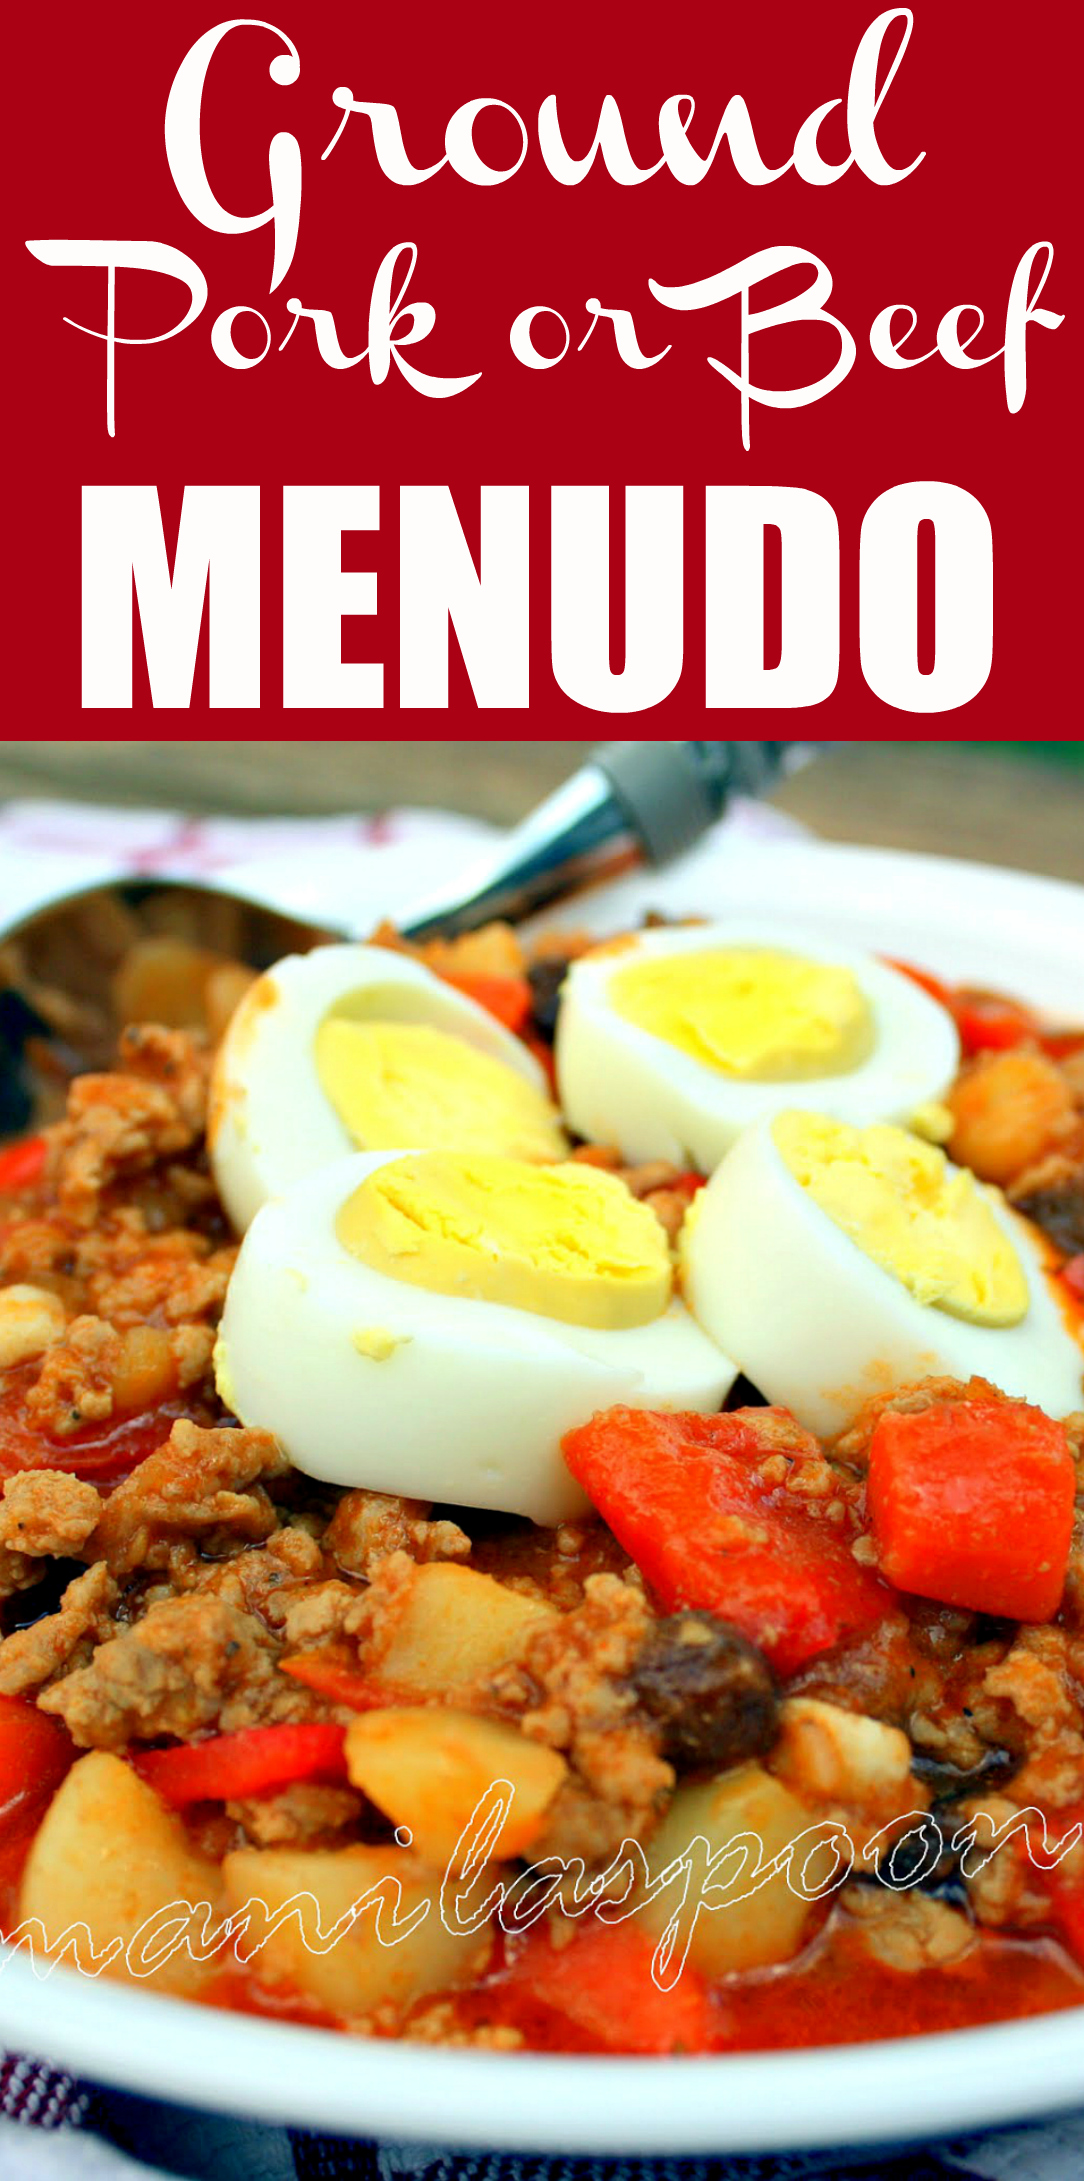 The classic Filipino stew, Menudo, made with ground meat for a quicker cooking time and more flavor absorption! Loaded with vegetables and simmered in a perfectly seasoned tomato sauce the whole family will enjoy this!